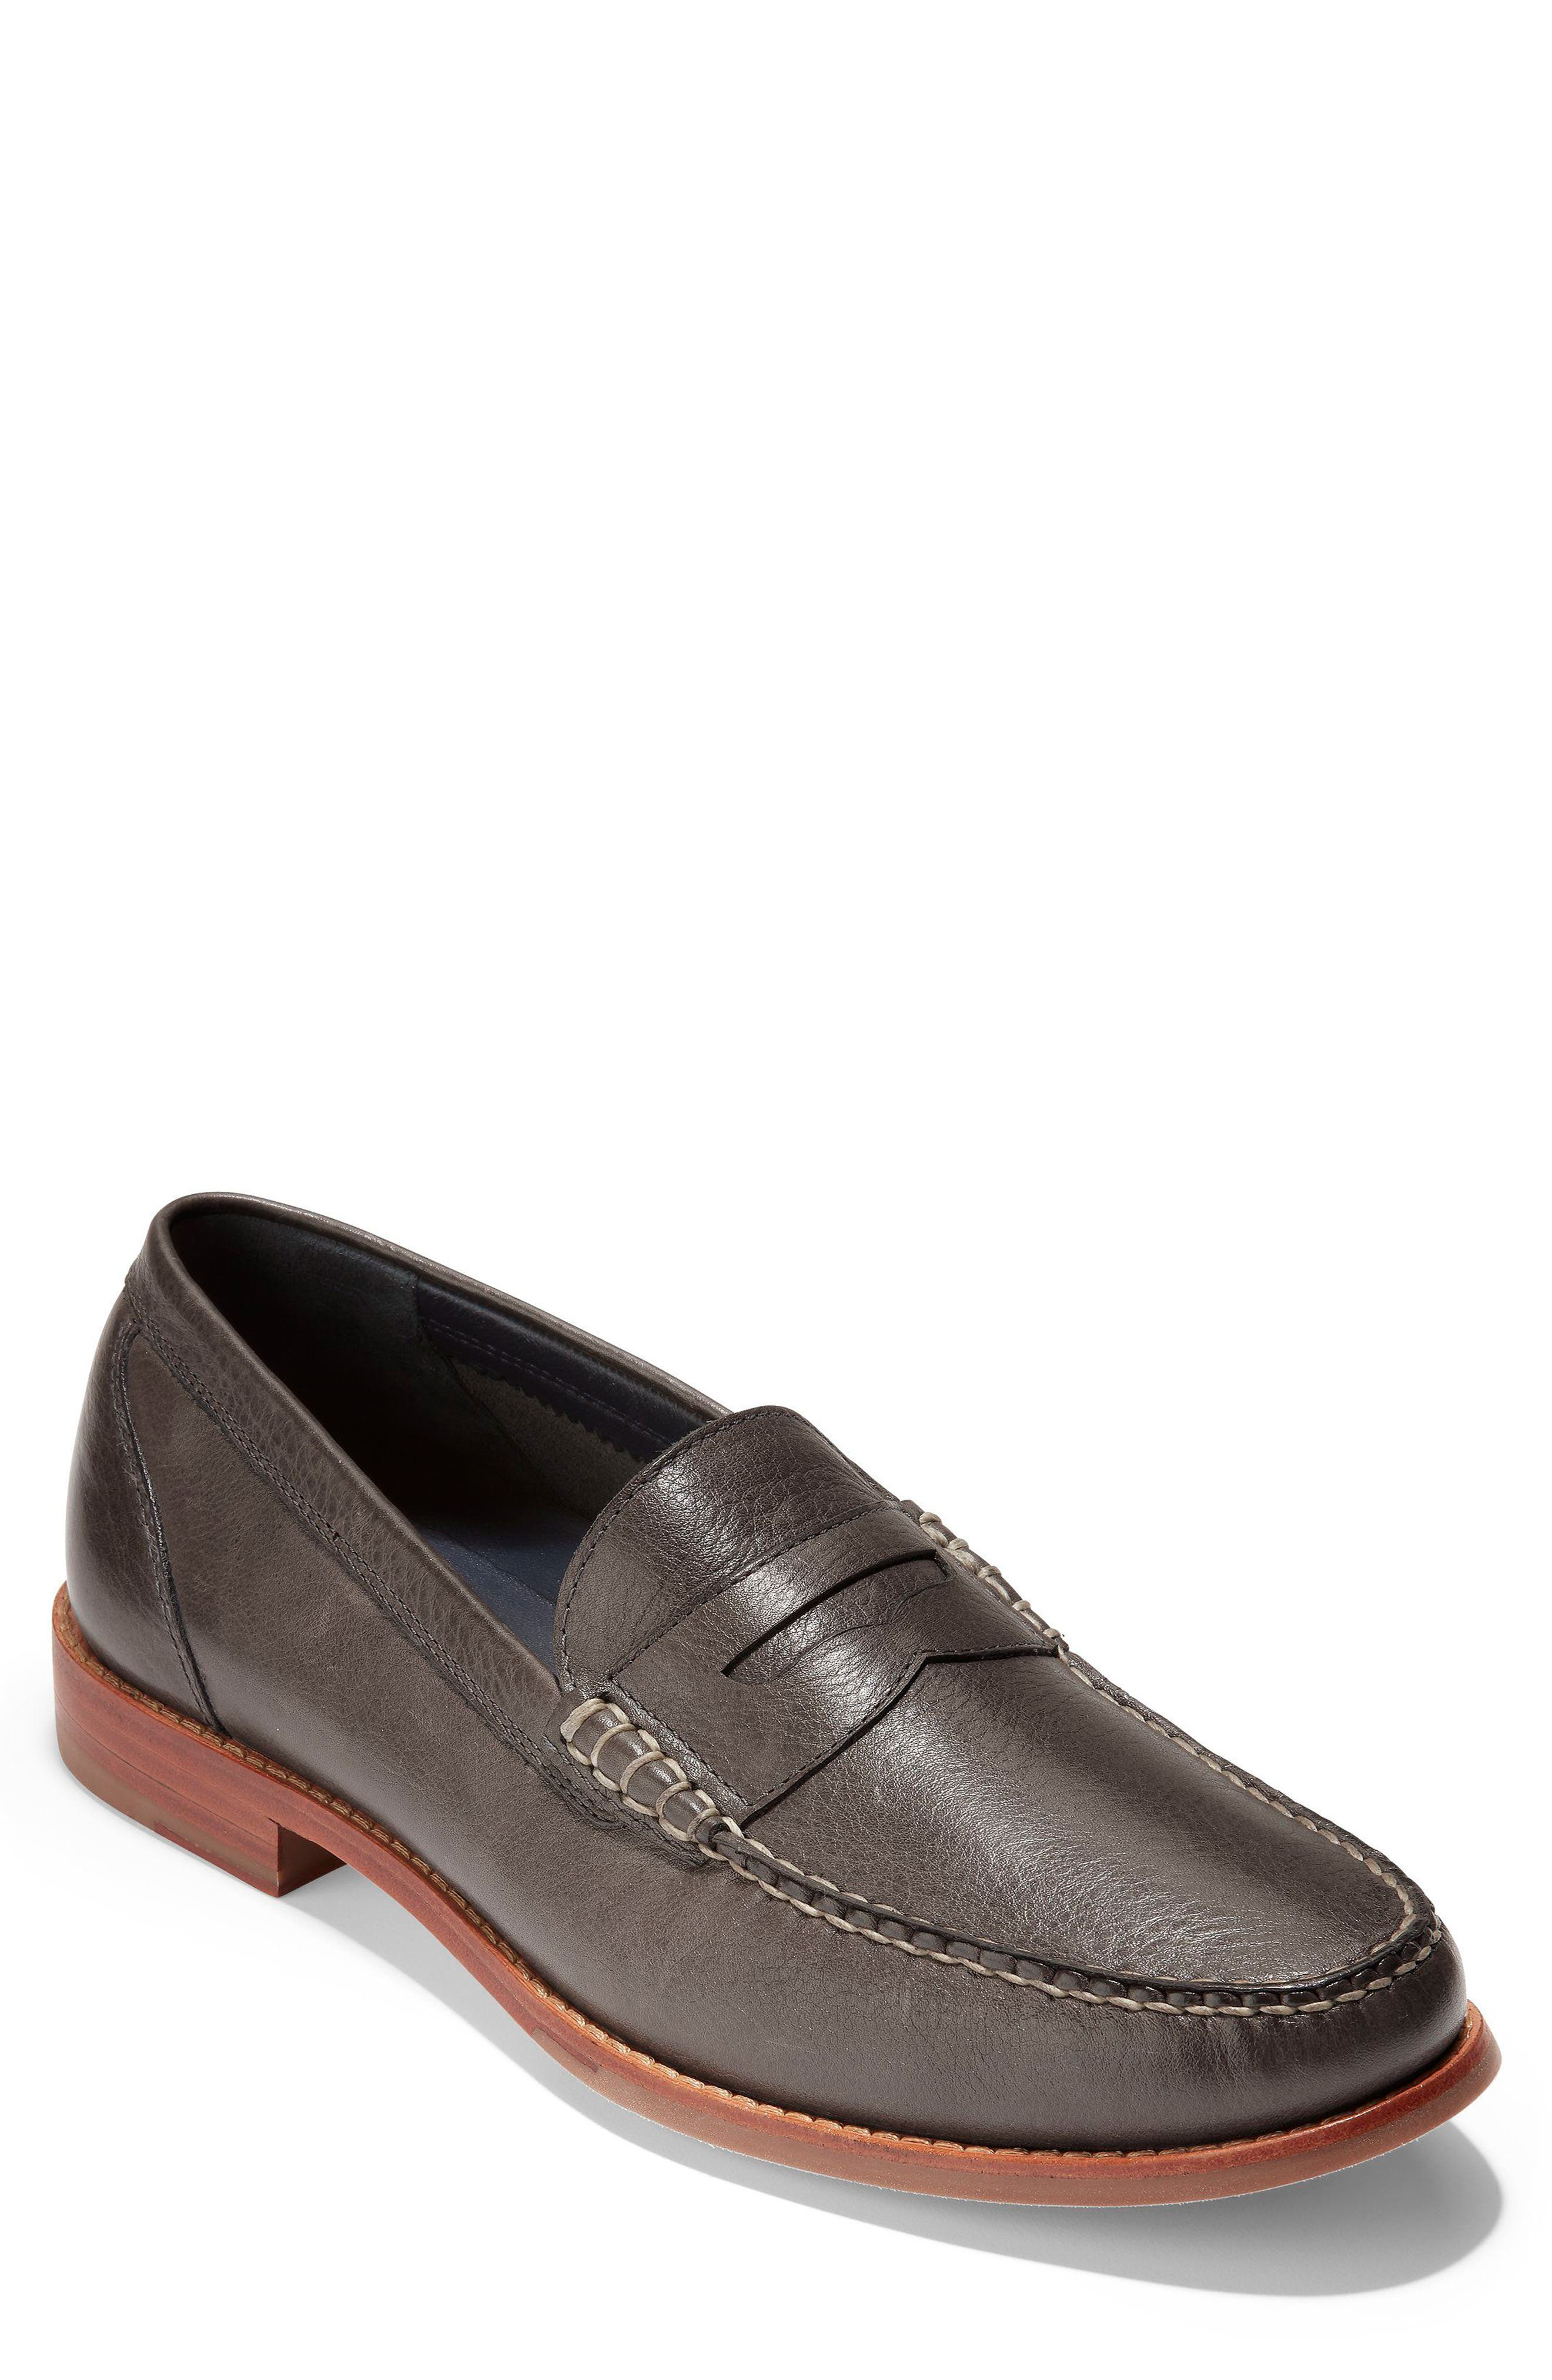 'Pinch Grand' Penny Loafer,                         Main,                         color, 021